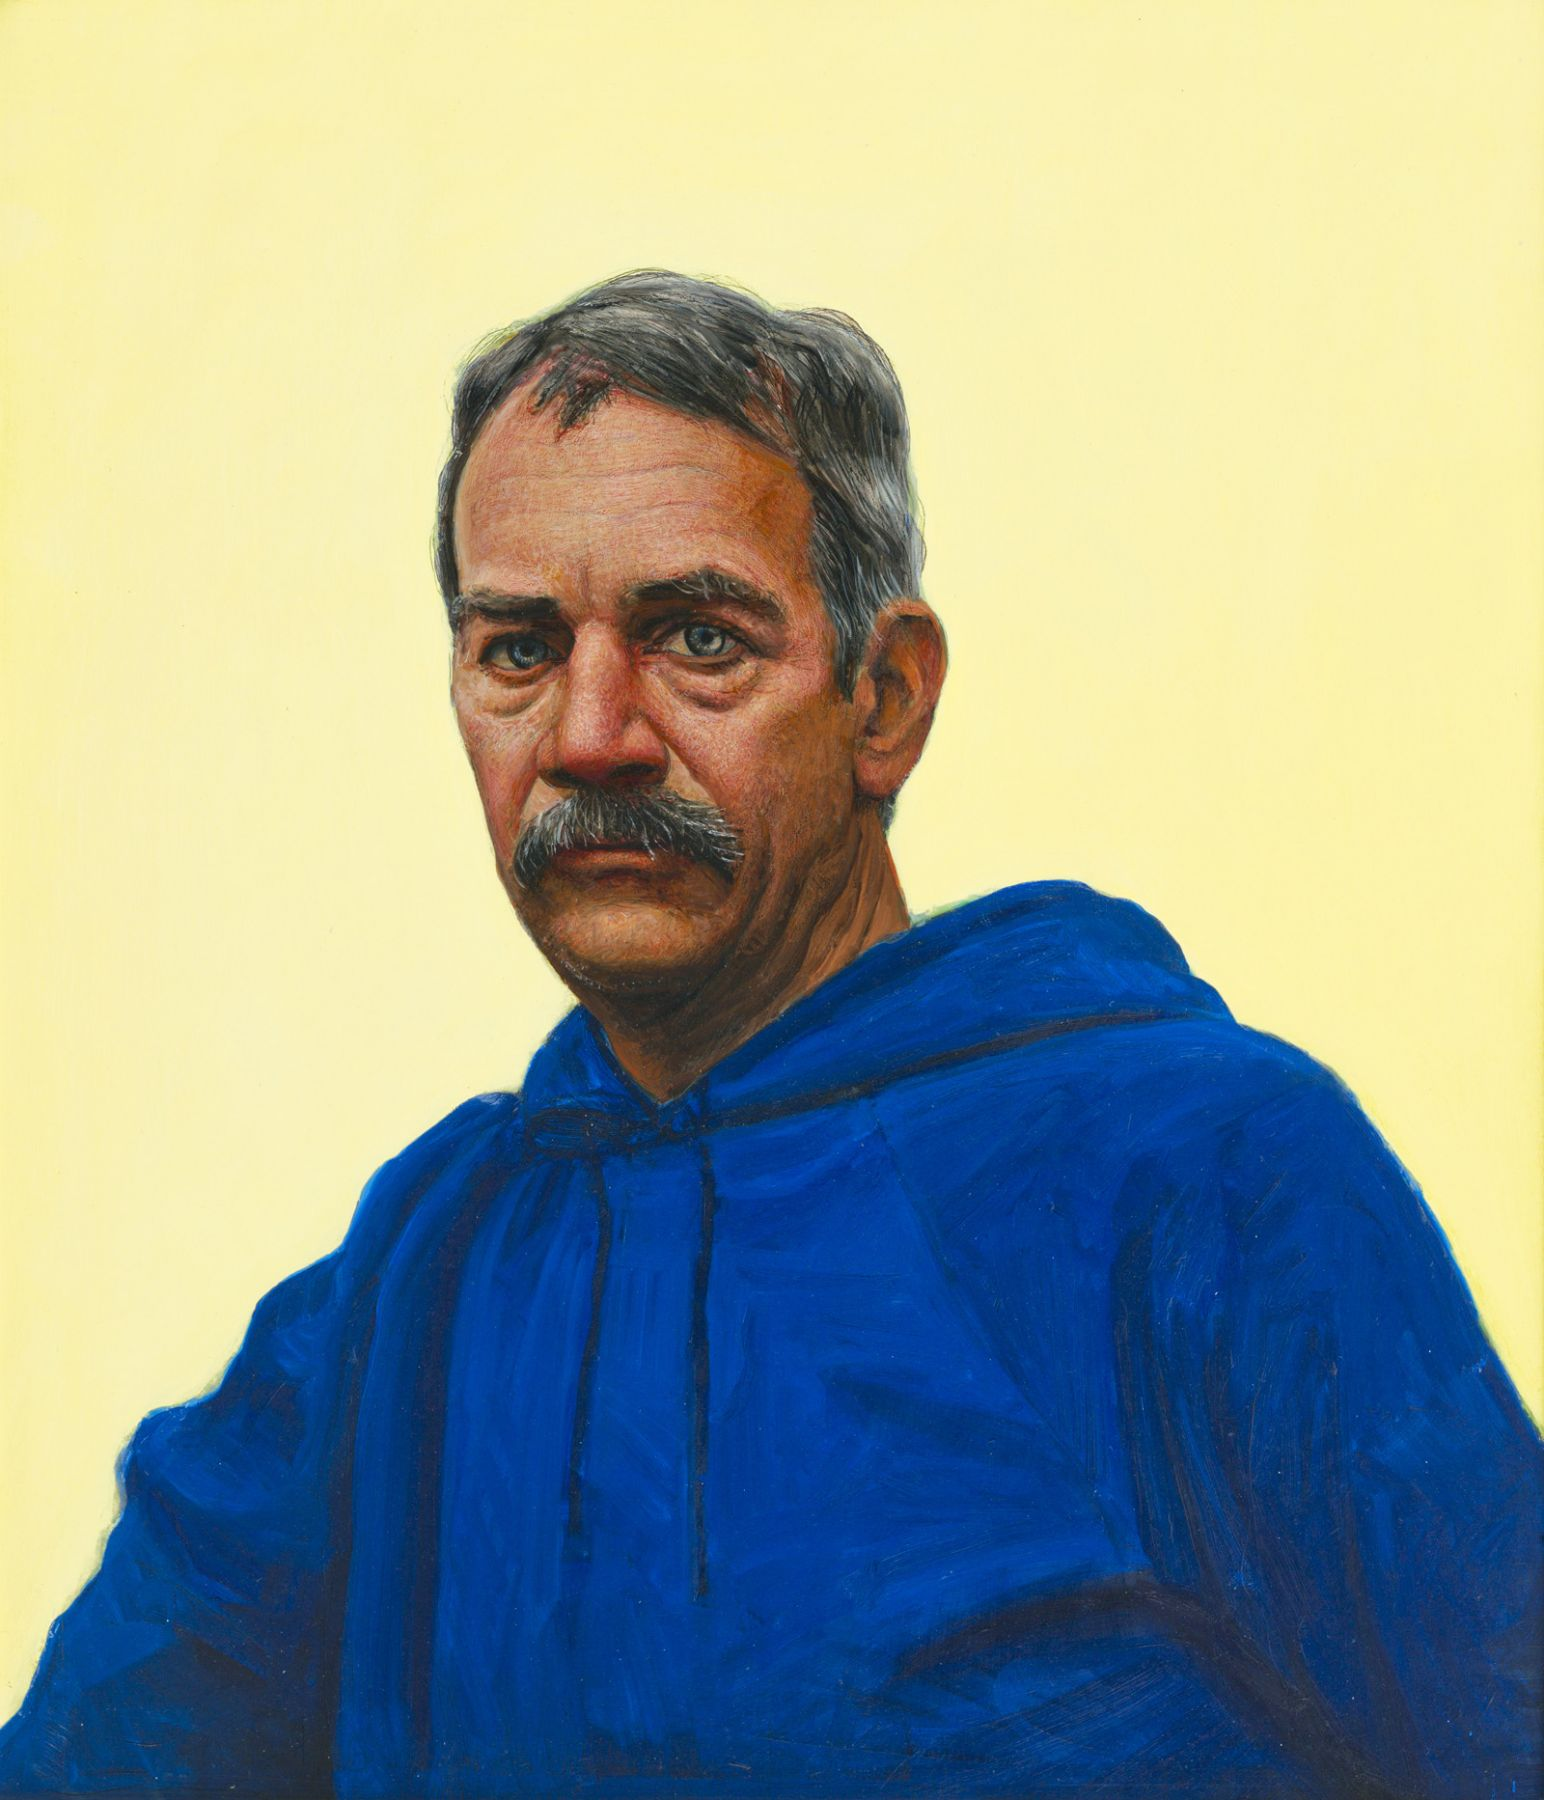 Gregory Gillespie, Self Portrait in Blue Hooded Sweatshirt, 1993, oil and alkyd on board, 26 x 22 1/2 inches